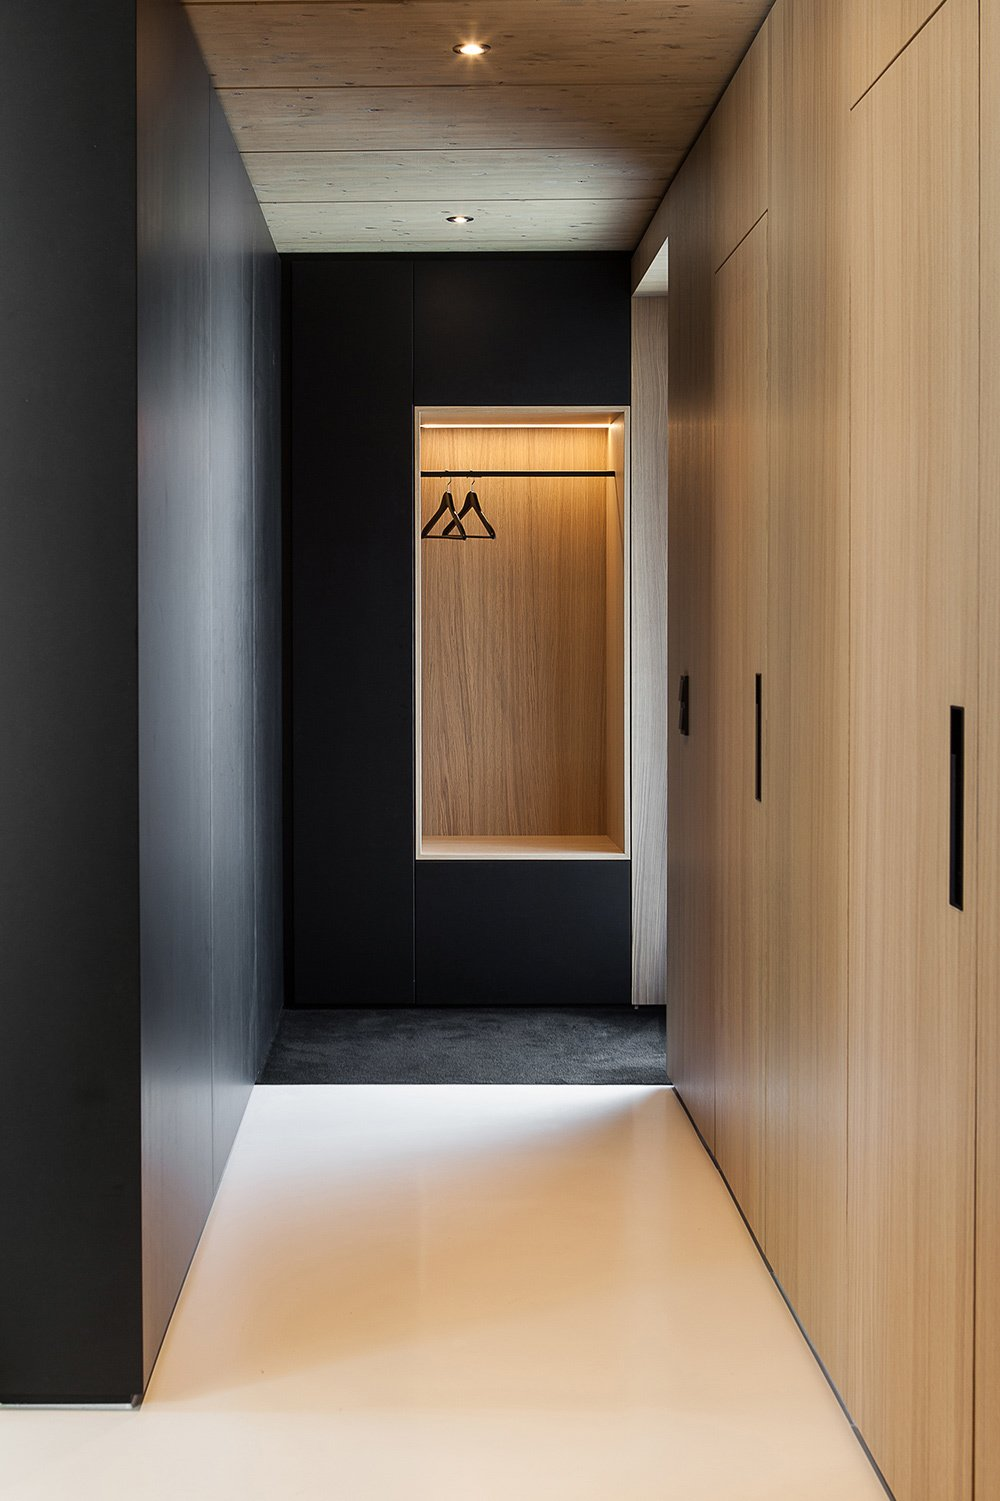 Custom built-in furniture takes design cues from the home's timber frame. The staircase and all built-in storage objects are made of wood. Two black wood units separate the stairwell from the living room and kitchen.  A Strikingly Minimal Home Built in Less Than Six Months by Tiffany Jow